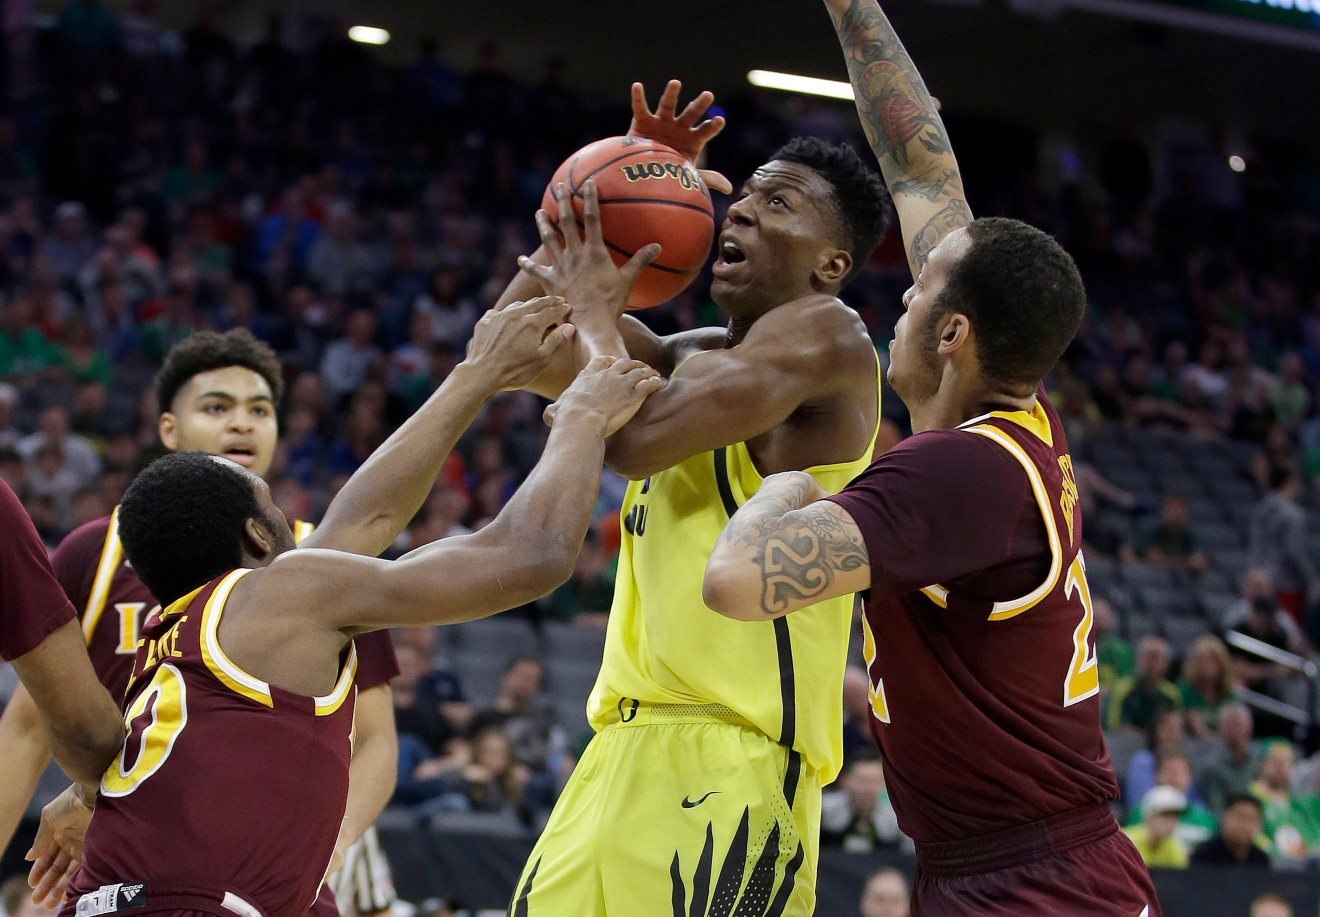 Oregon forward Kavell Bigby-Williams, center, is fouled by Iona guard Jon Severe, left, during the first half of a first-round game in the men's NCAA college basketball tournament Sacramento, Calif. Friday, March 17, 2017. (AP Photo/Rich Pedroncelli)